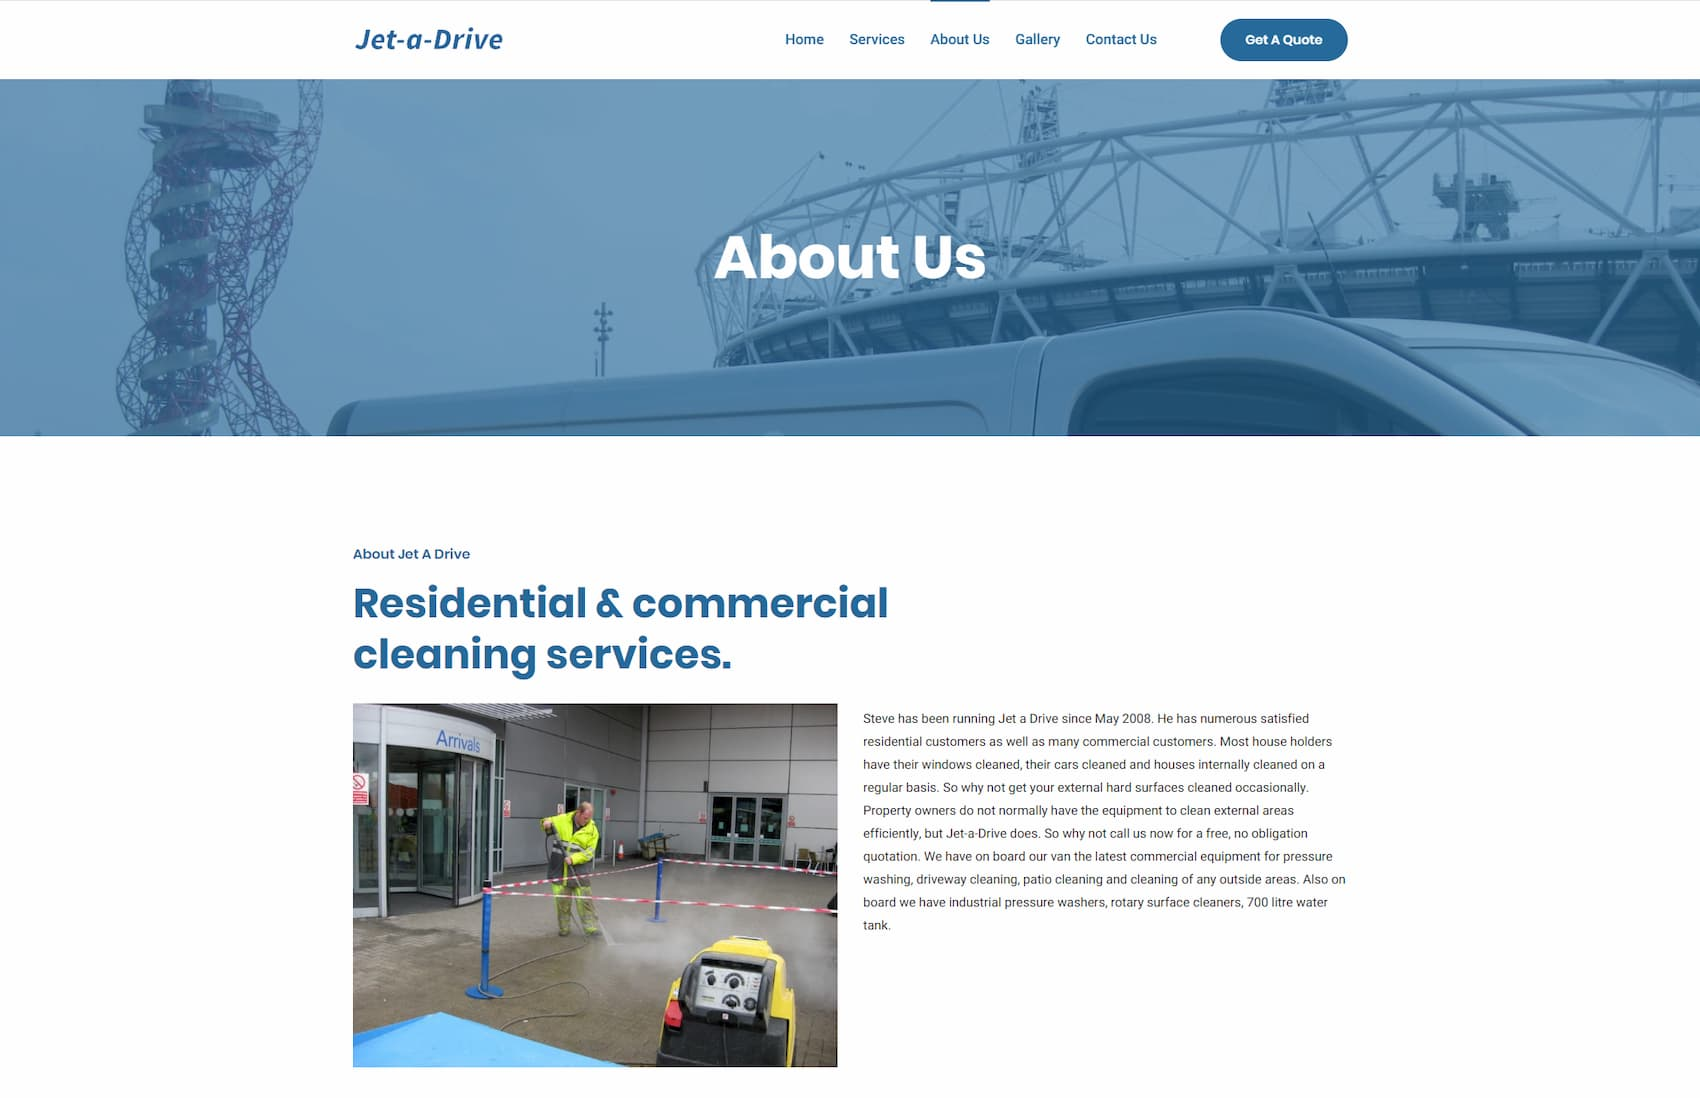 jet a drive about us page